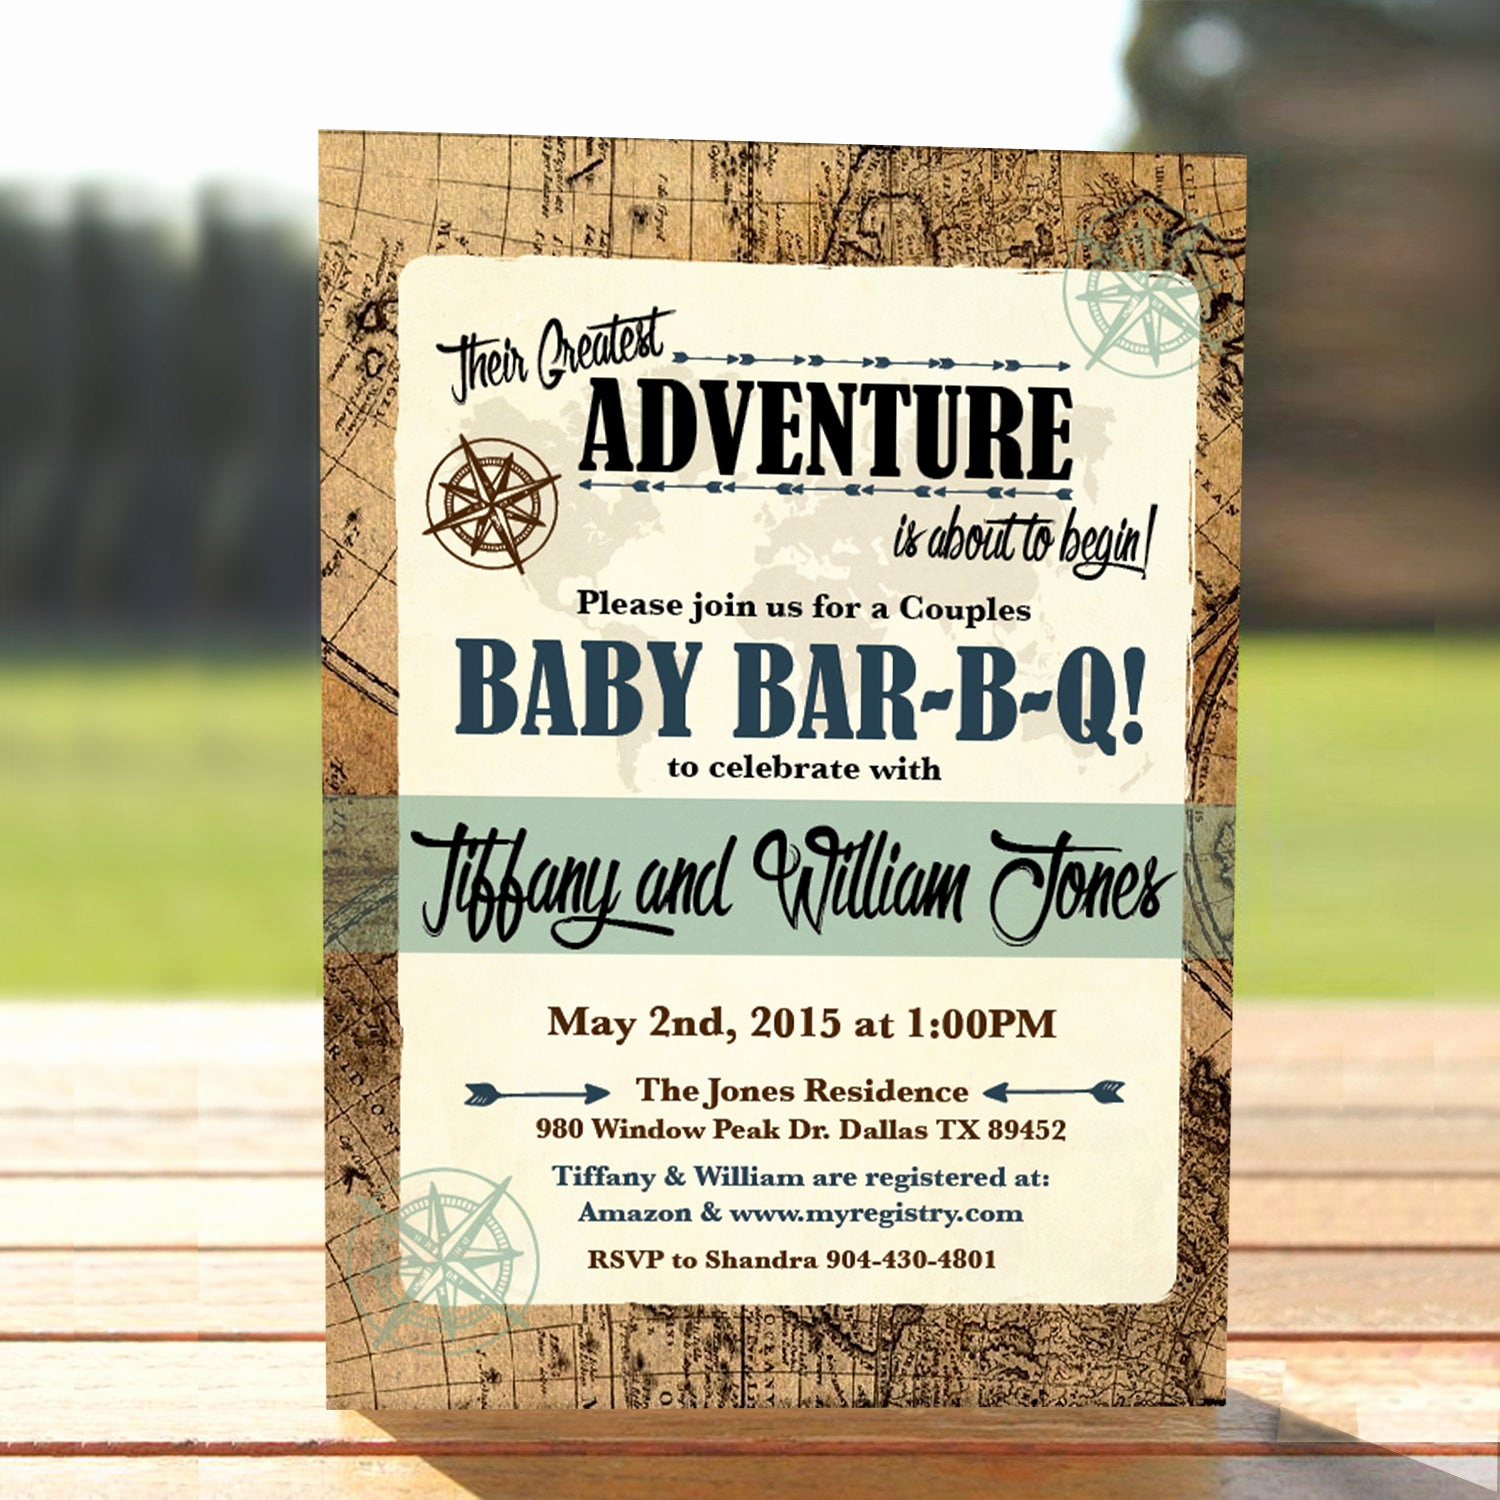 Couple Shower Invitation Wording Awesome Vintage Map Couples Baby Shower Invitation Adventure Baby